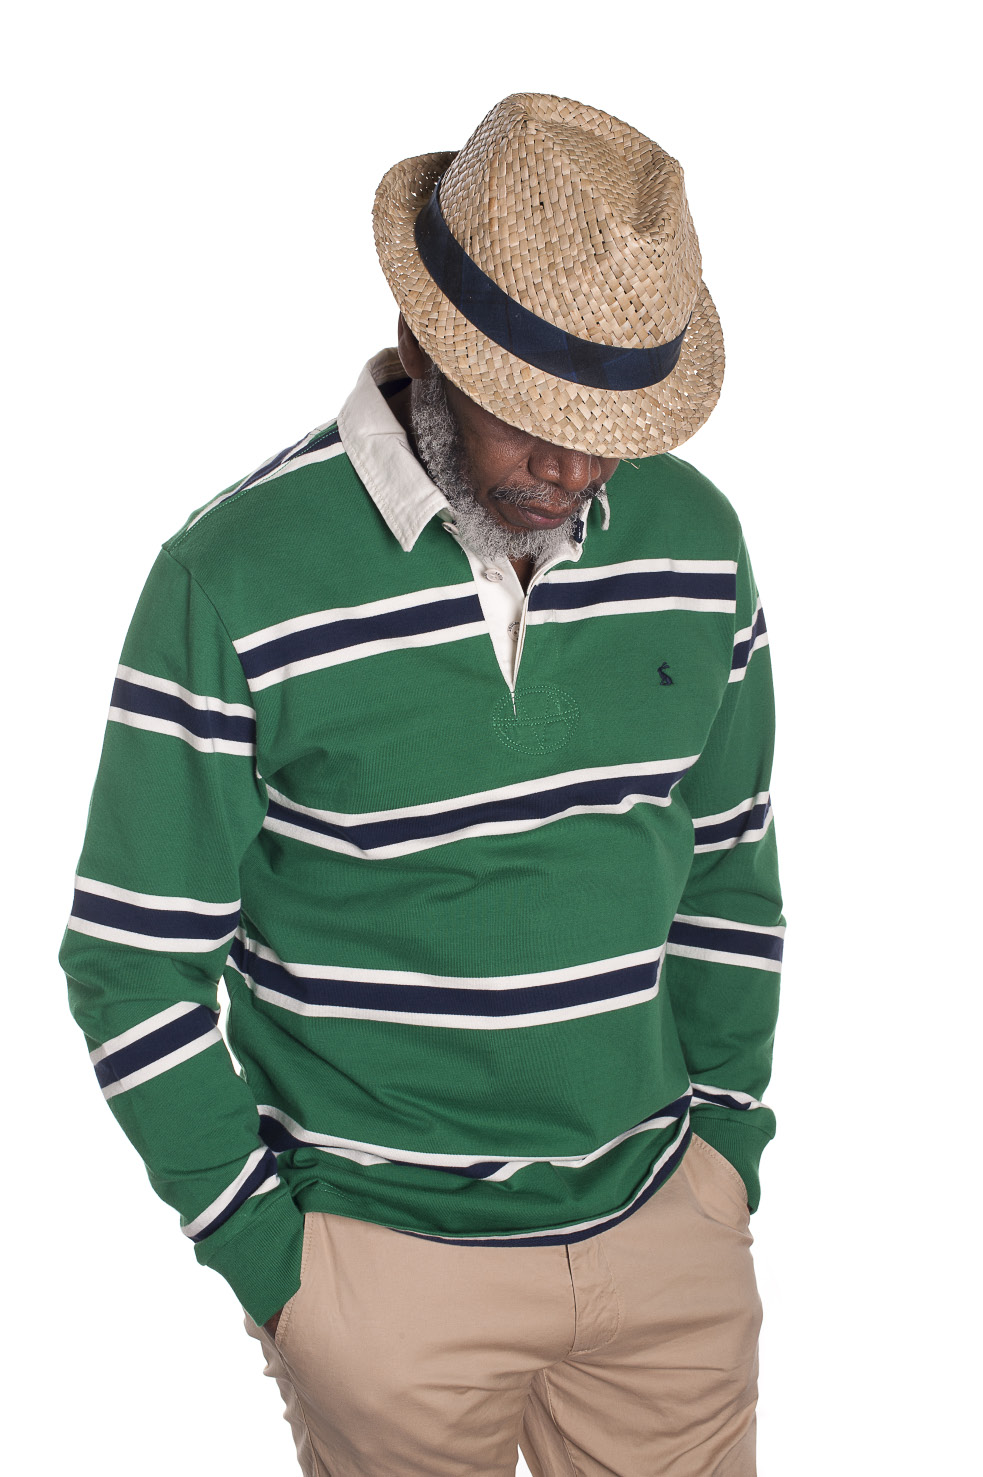 Joules striped rugby shirt, £59.95, Charity Farm Countrystore, Cranbrook charityfarmcountrystore.co.uk 01580 713189; Gant slim summer chino, £100, Fenwick, Tunbridge Wells fenwick.co.uk 01892 516716; Barbour hat, £34.94, The Golden Boot, Maidstone thegoldenboot.co.uk 01622 752349